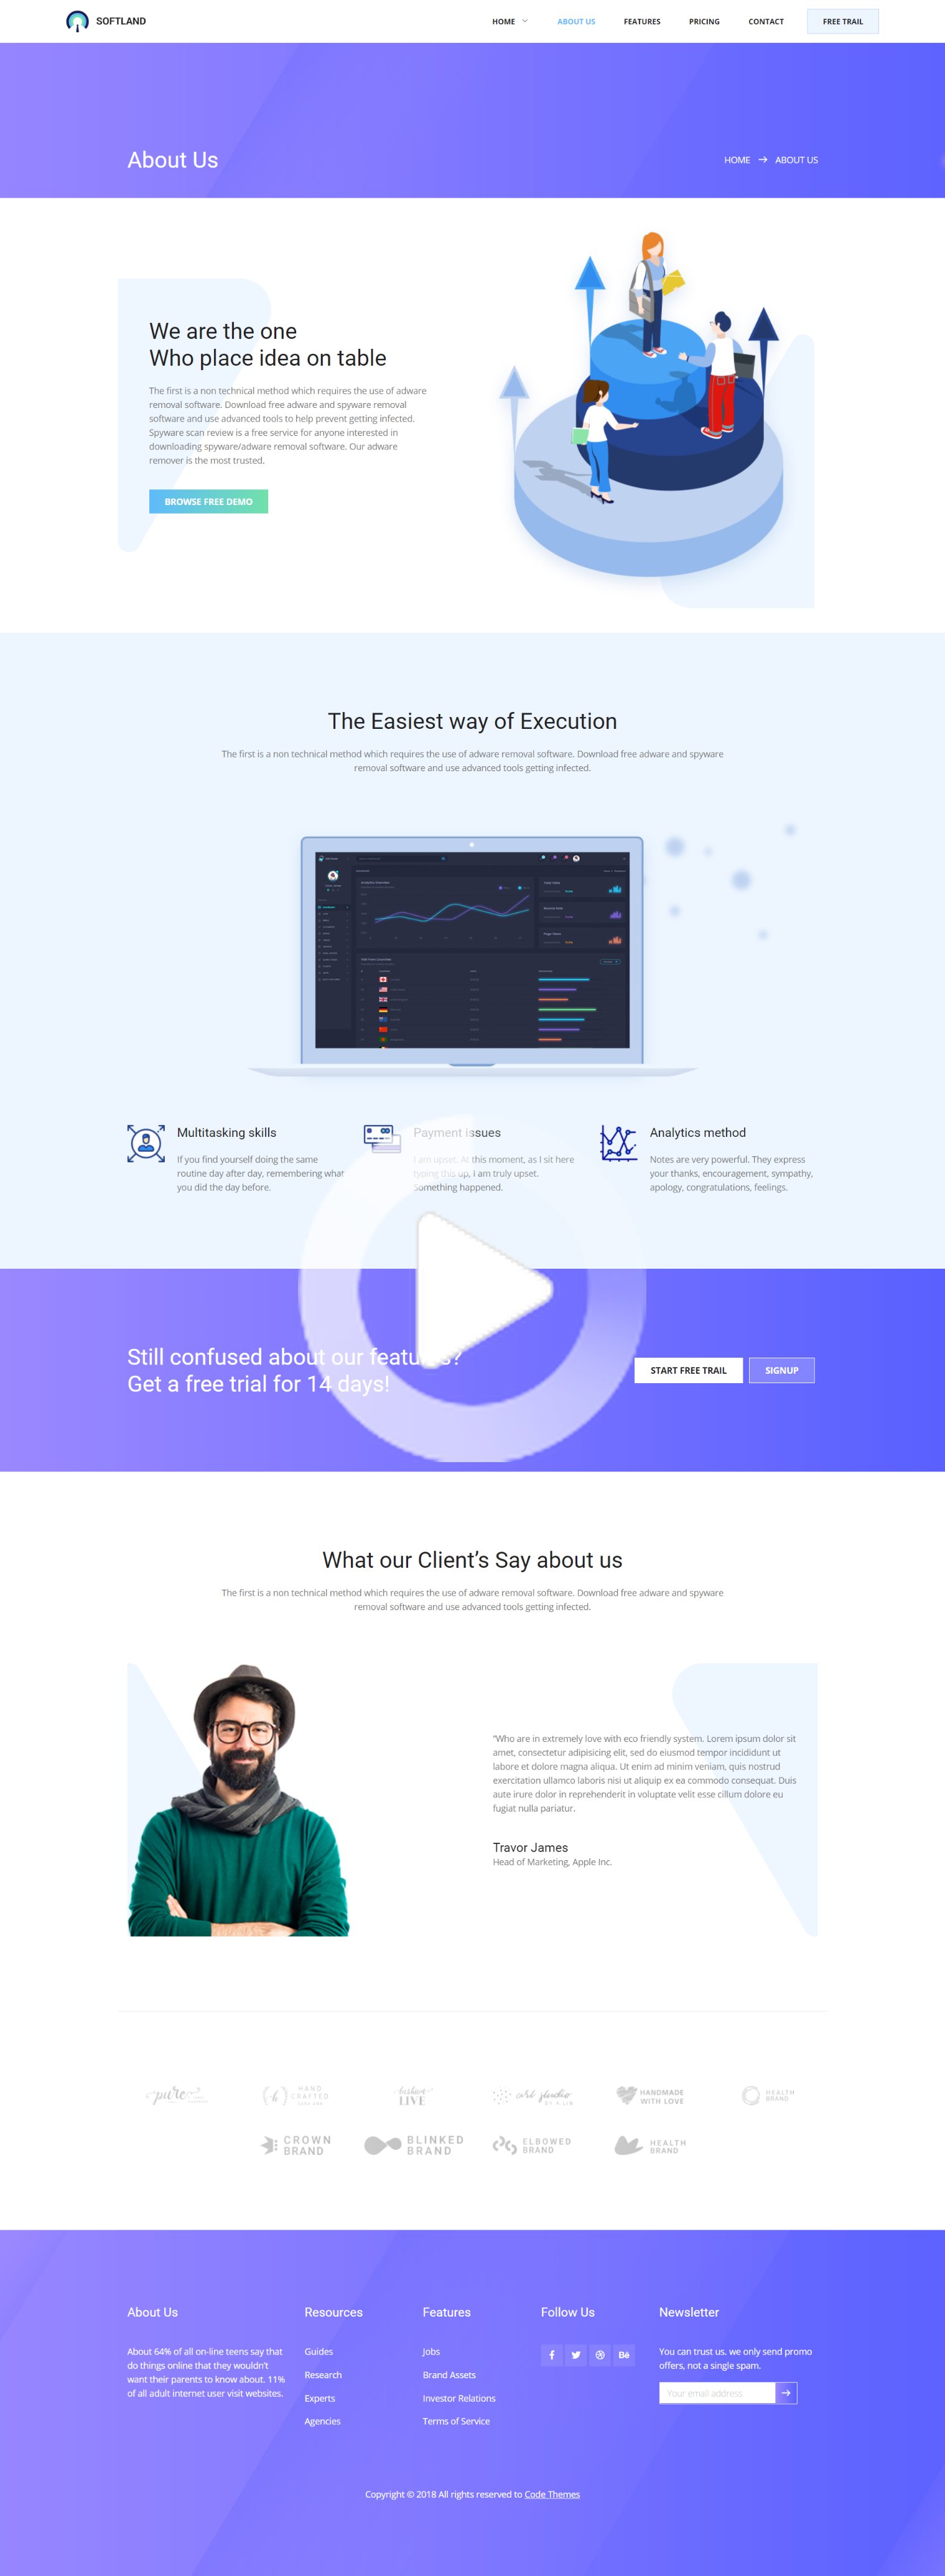 Softland Creative Clean Modern Trendy Design Saas And Software Template Gradient About Us Page Web Clean Web Design Web Design Web Design Quotes